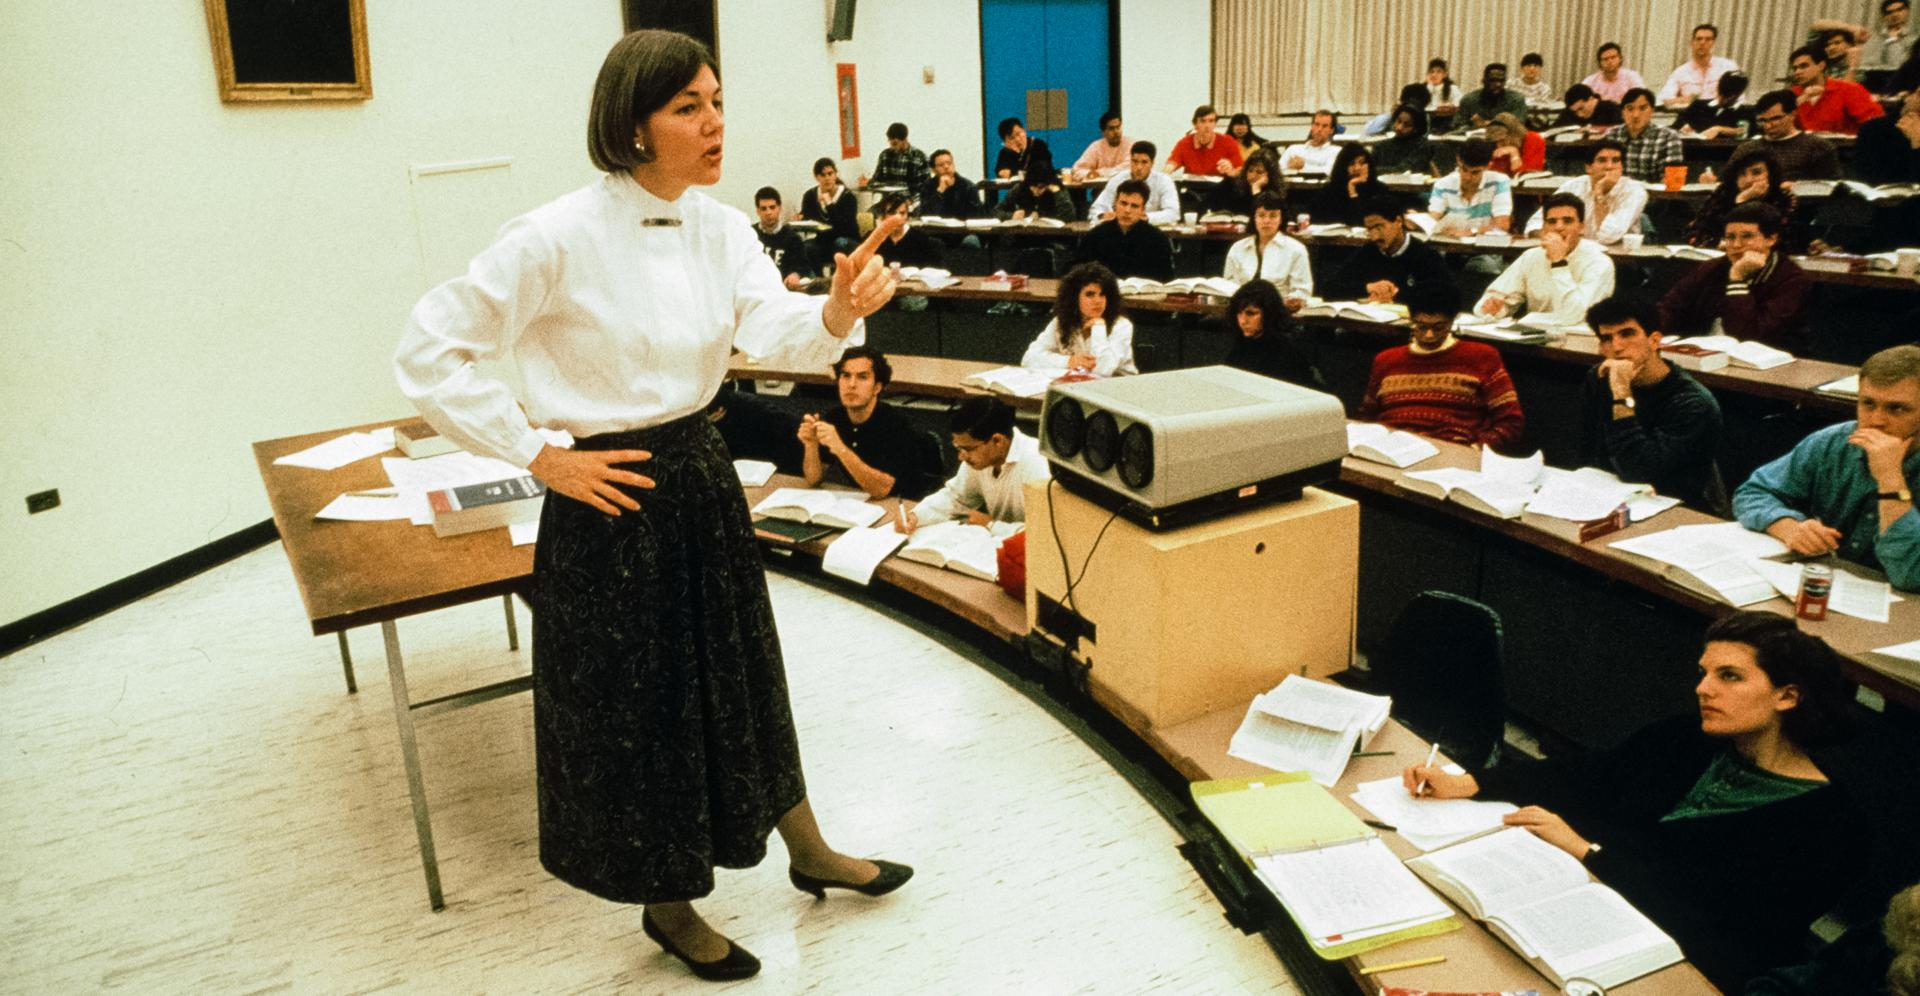 Elizabeth Warren, the future senator, taught a class at University of Pennsylvania Law School in Philadelphia in the early 1990s.